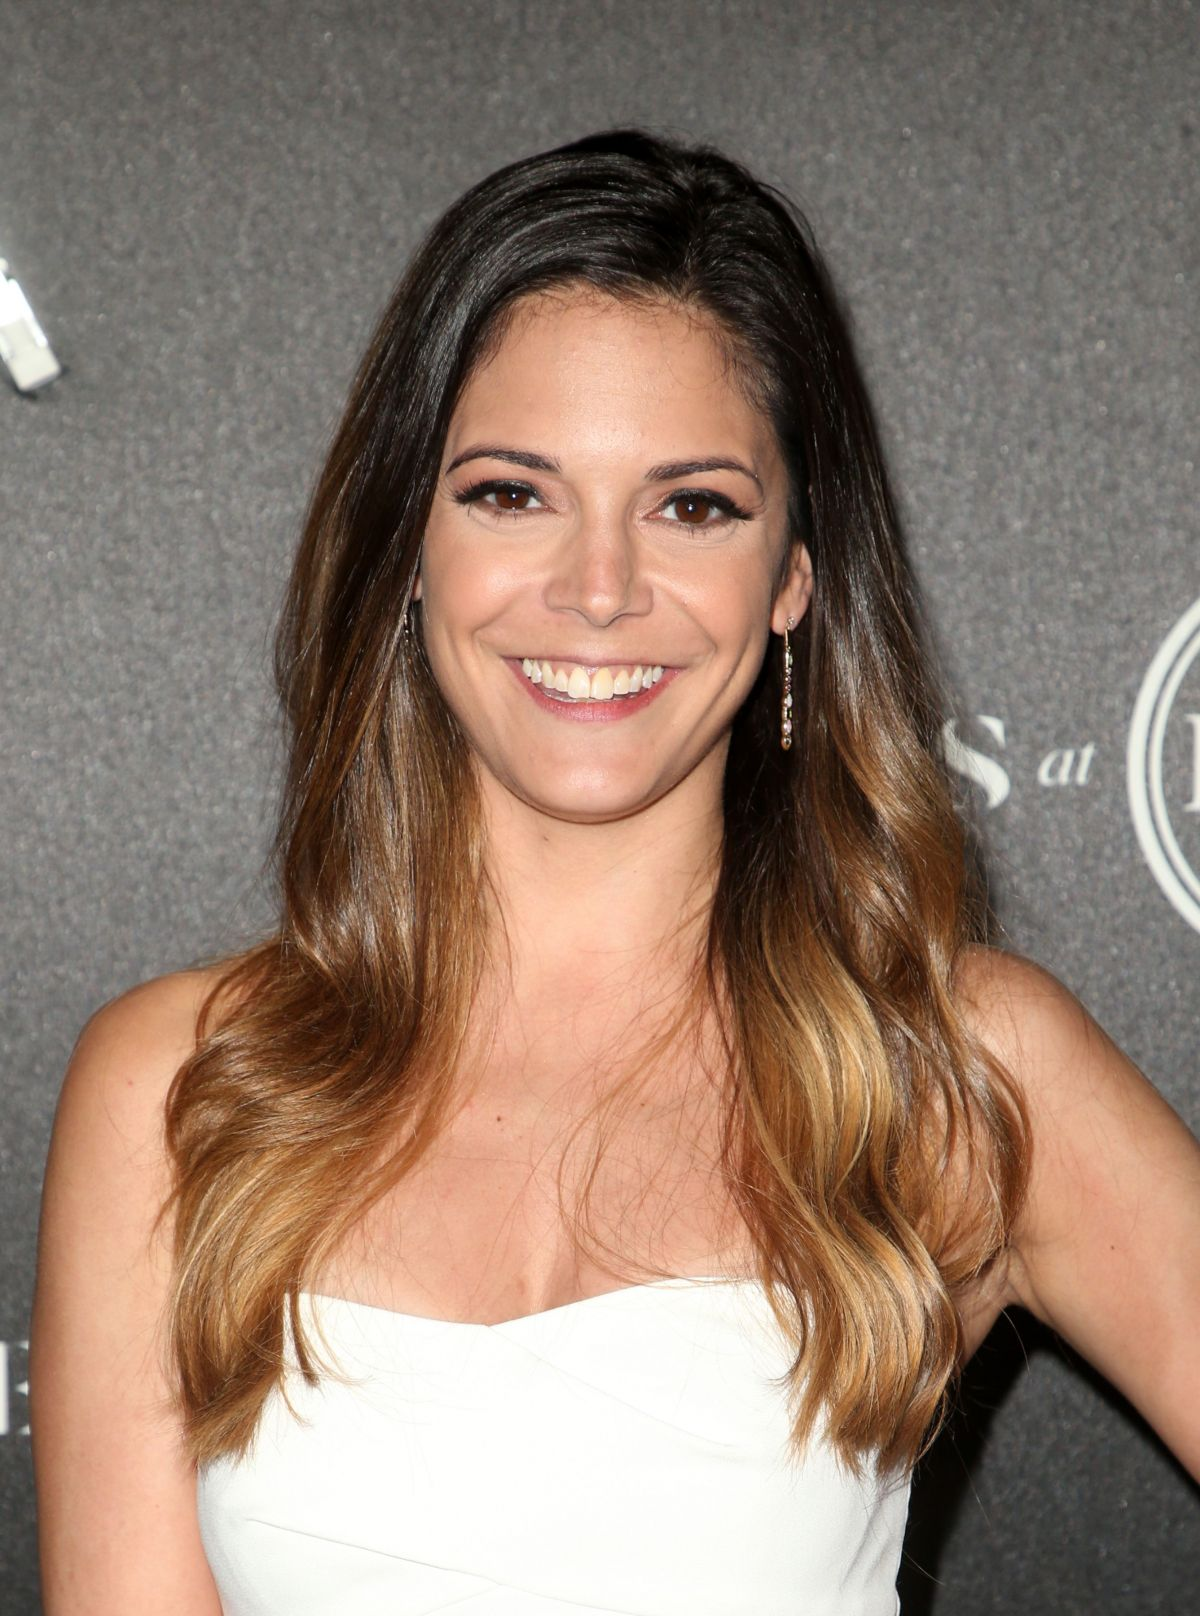 Katie Nolan Wedding.Katie Nolan At Heroes At The Espys Pre Party In Los Angeles 07 17